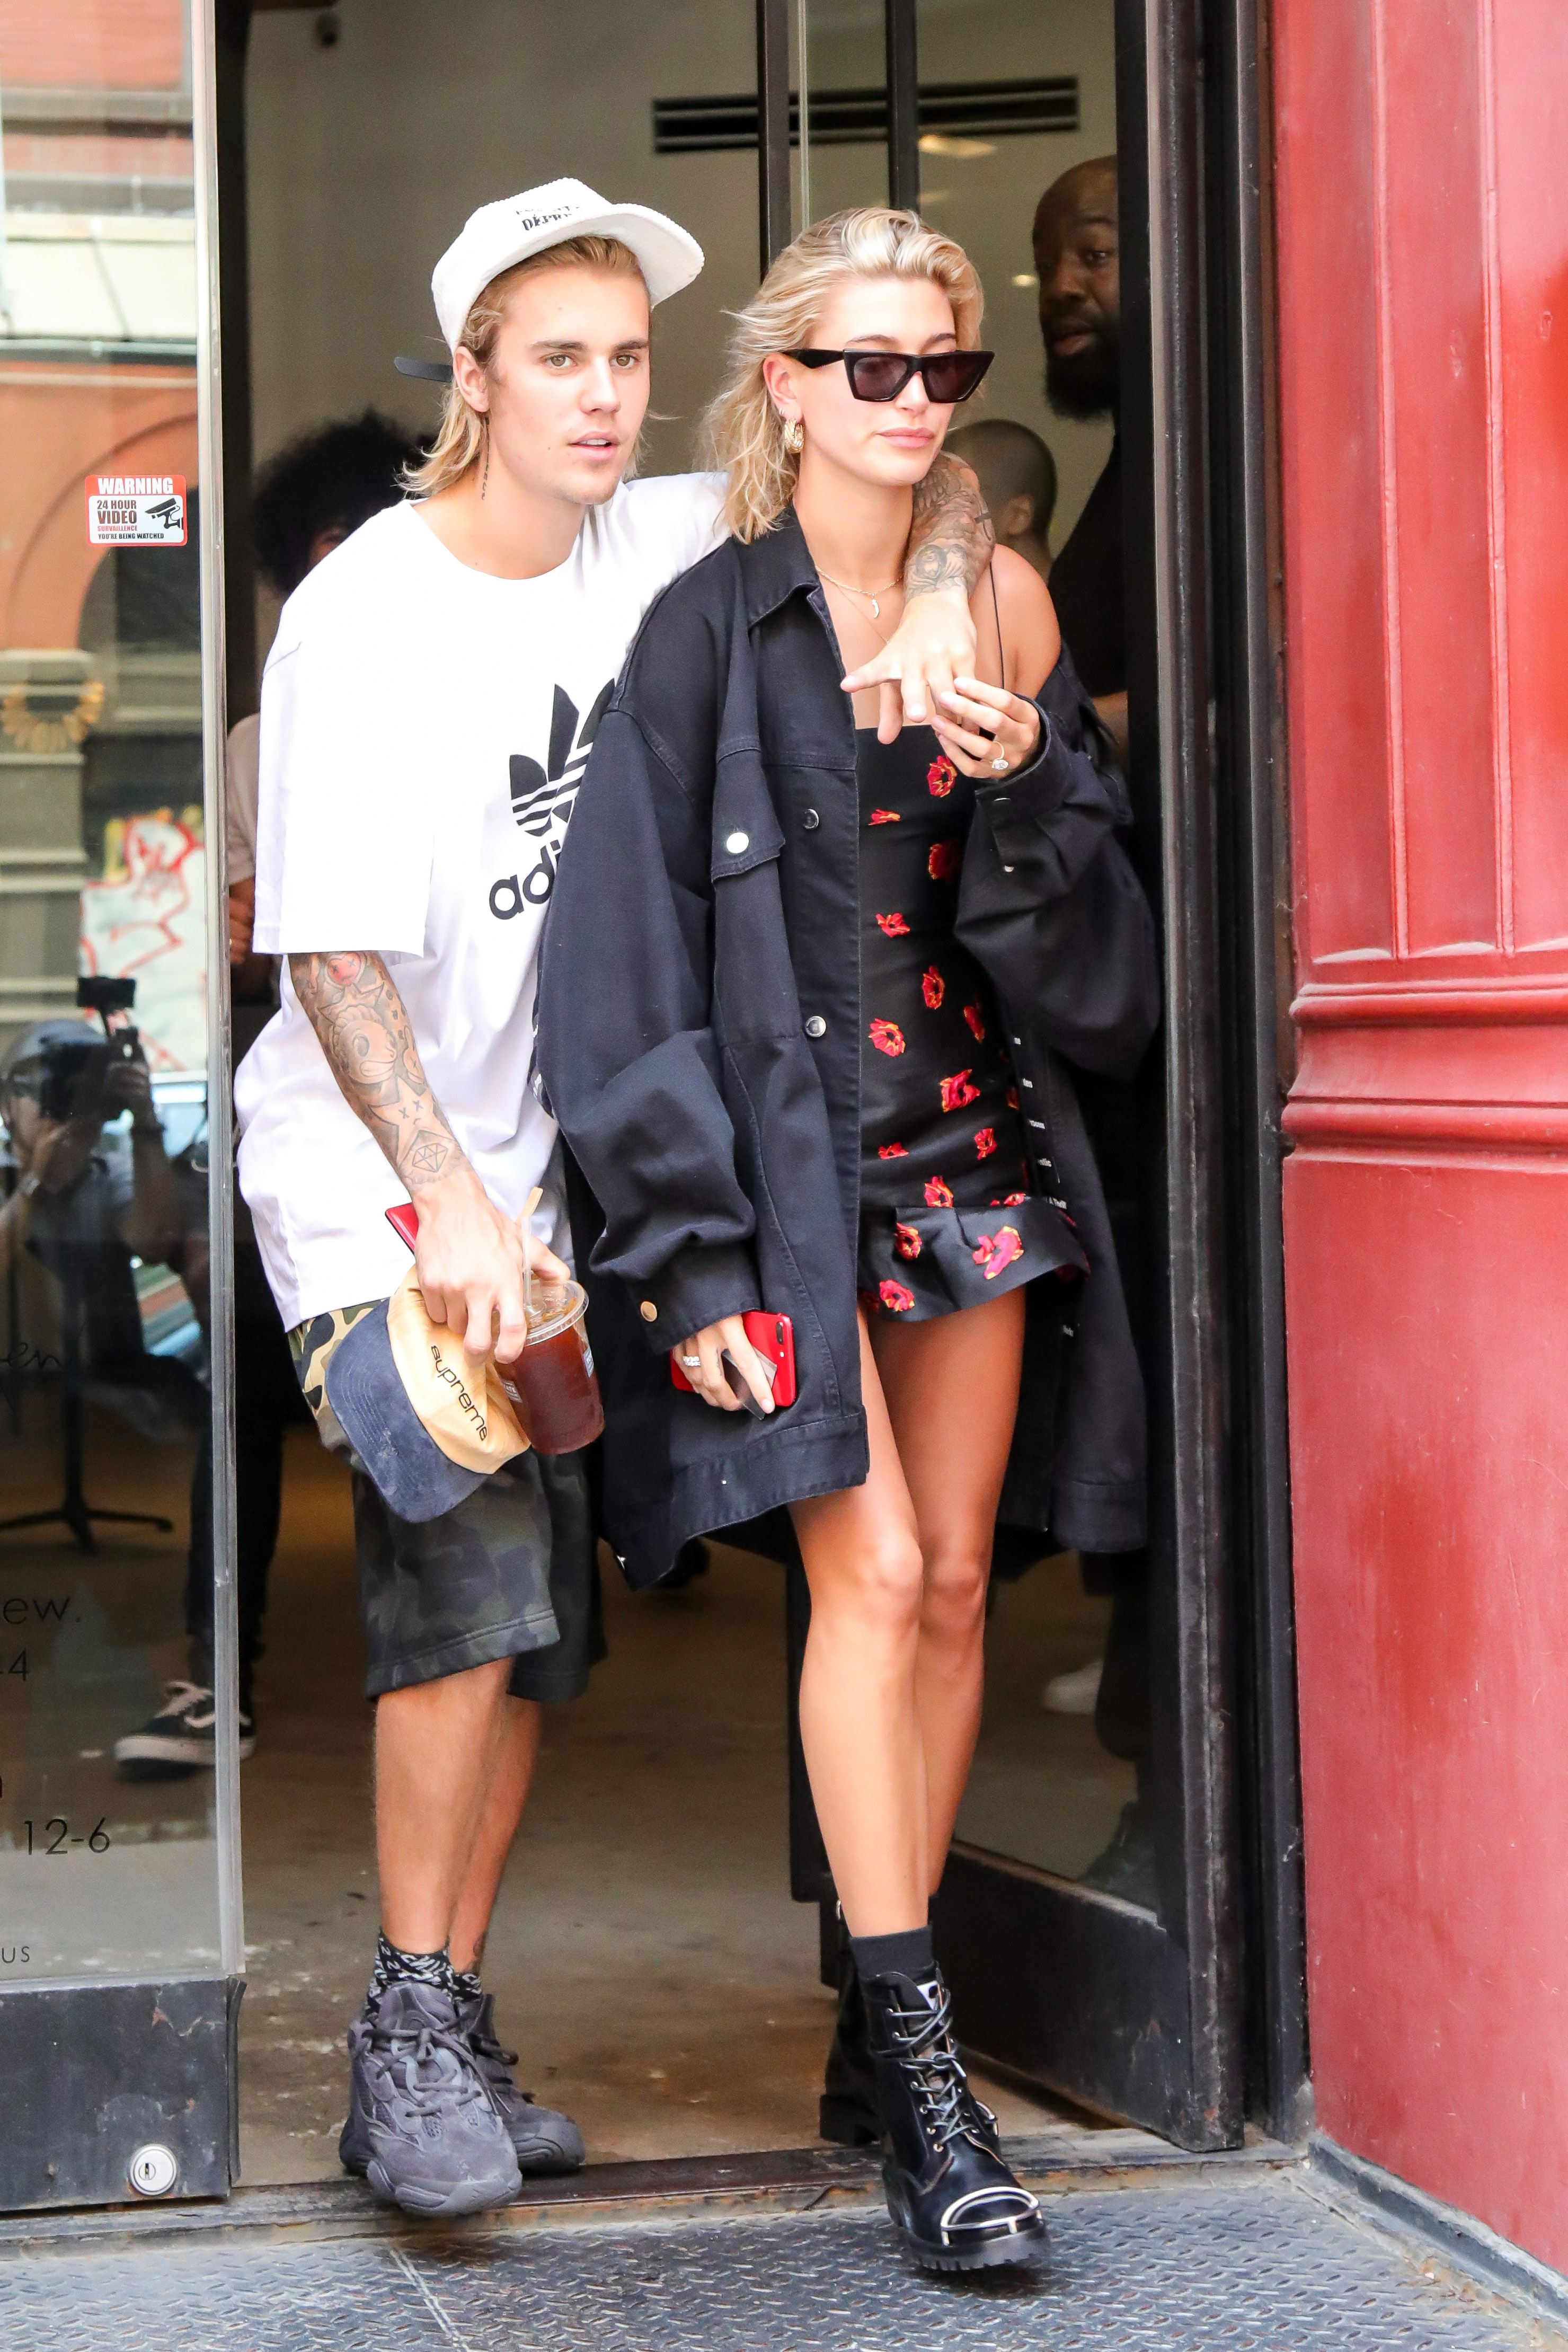 Justin Bieber Gives Hailey Baldwin a Really Extra Watch and Instagram Tribute for Her Birthday